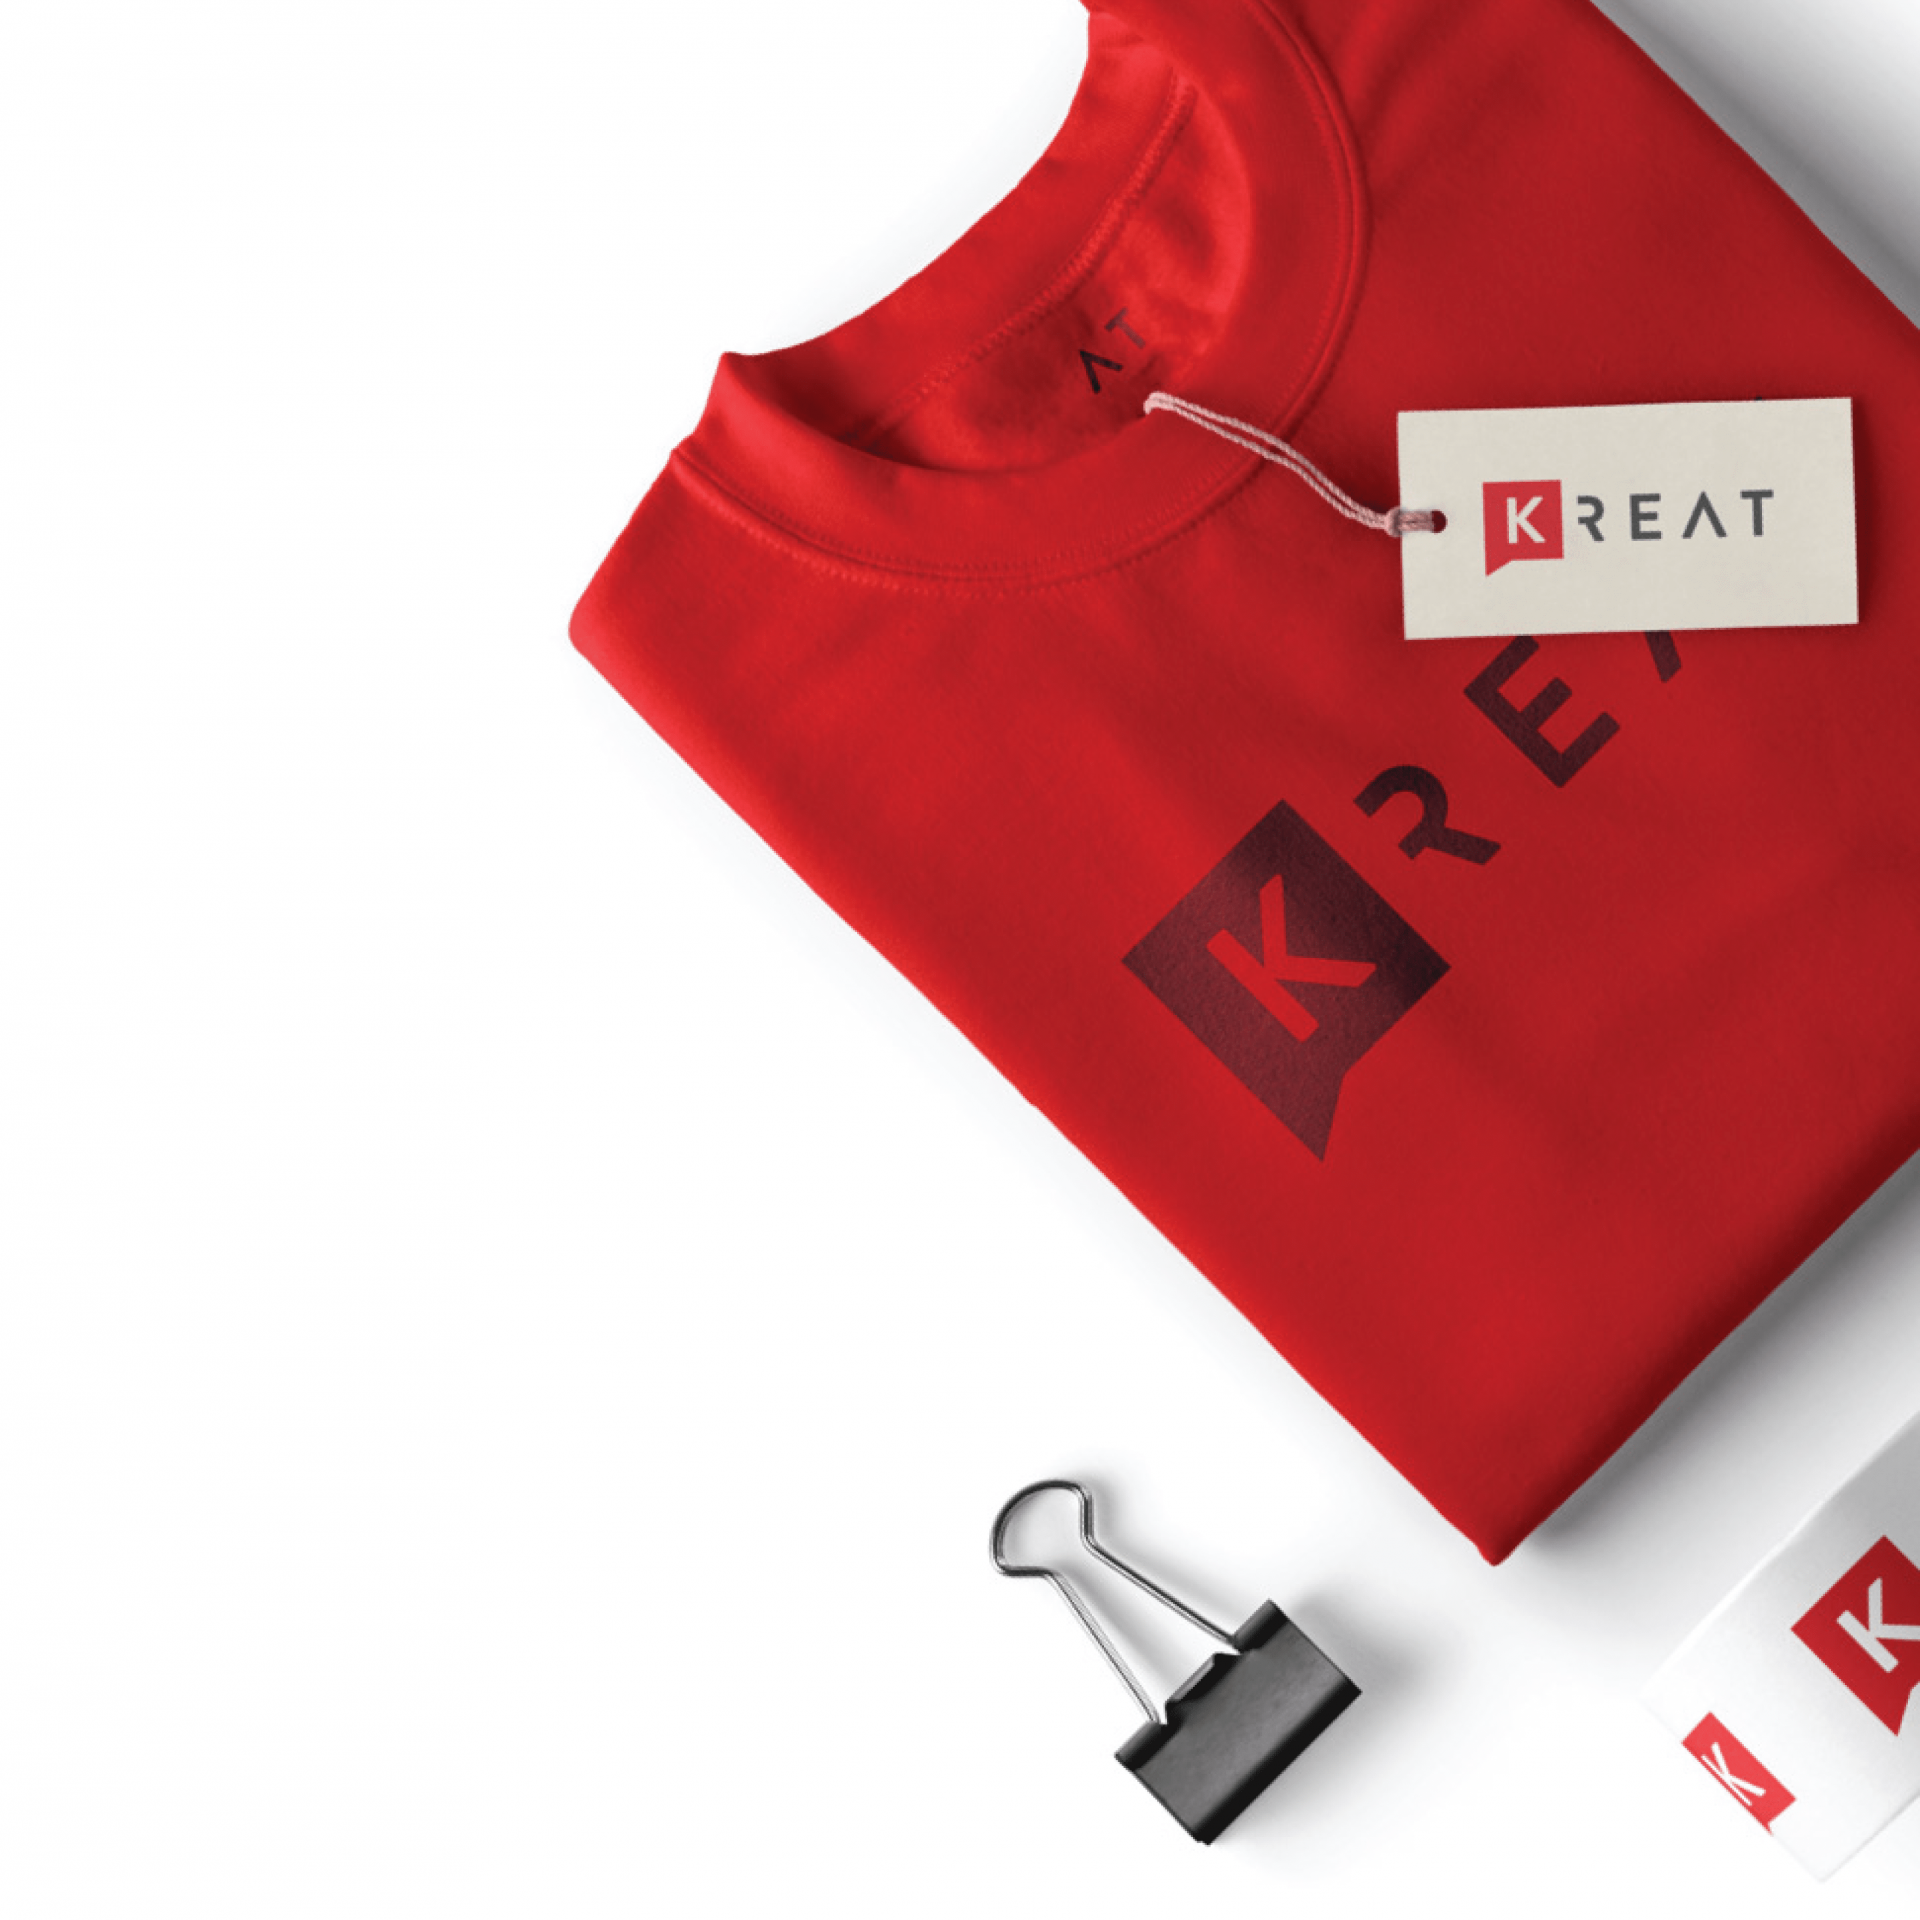 KREATE RESPONSIVE 02 - Kreat